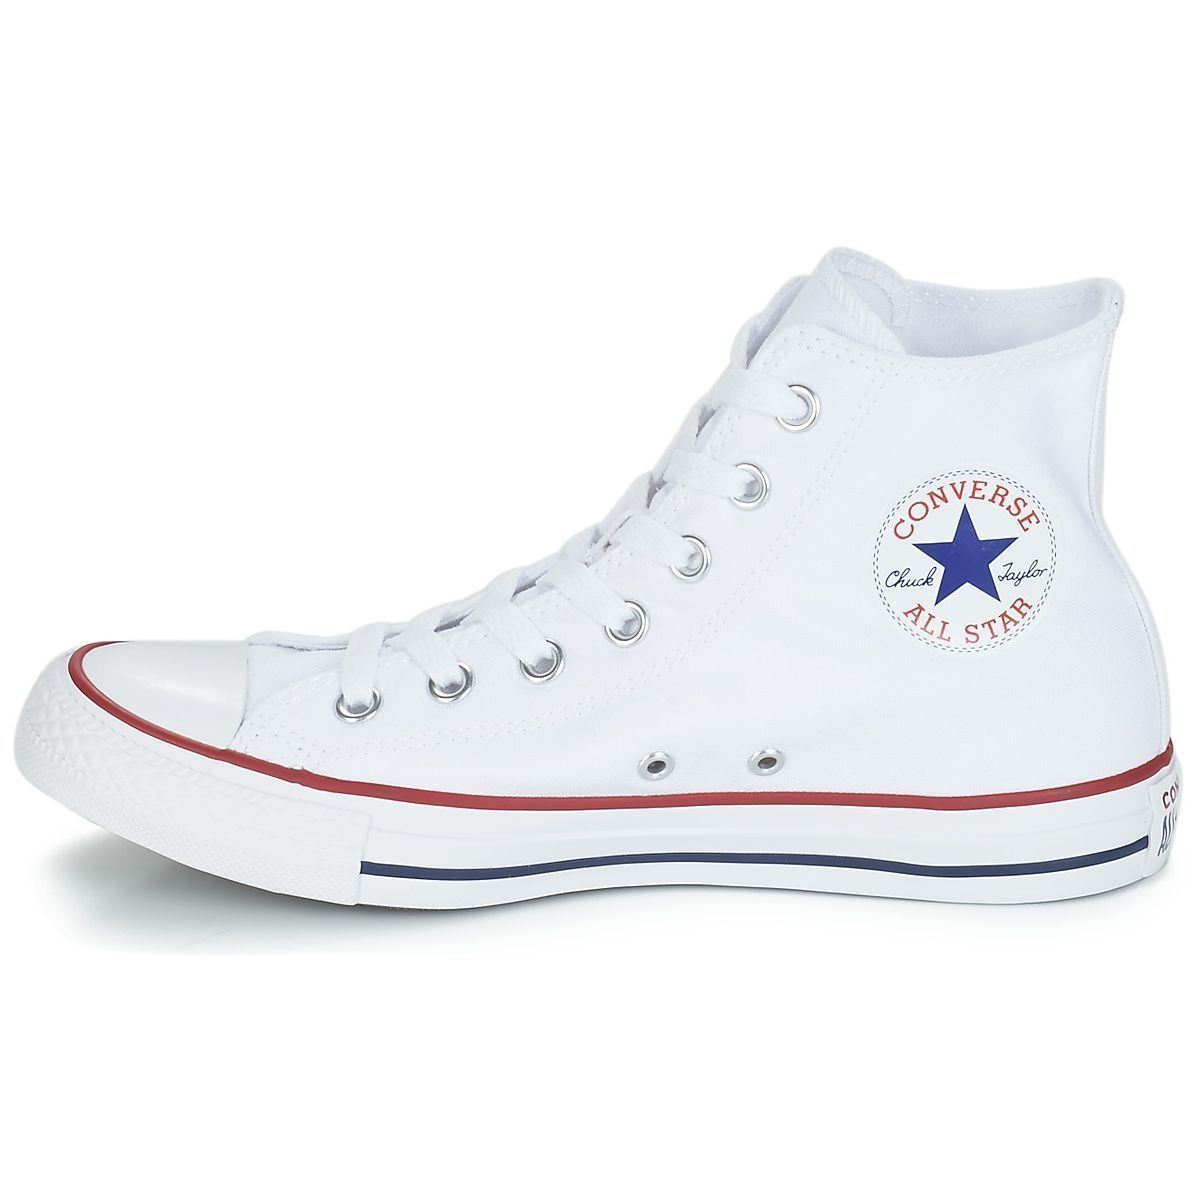 Converse fille ctas all star hi blanc1629802_3